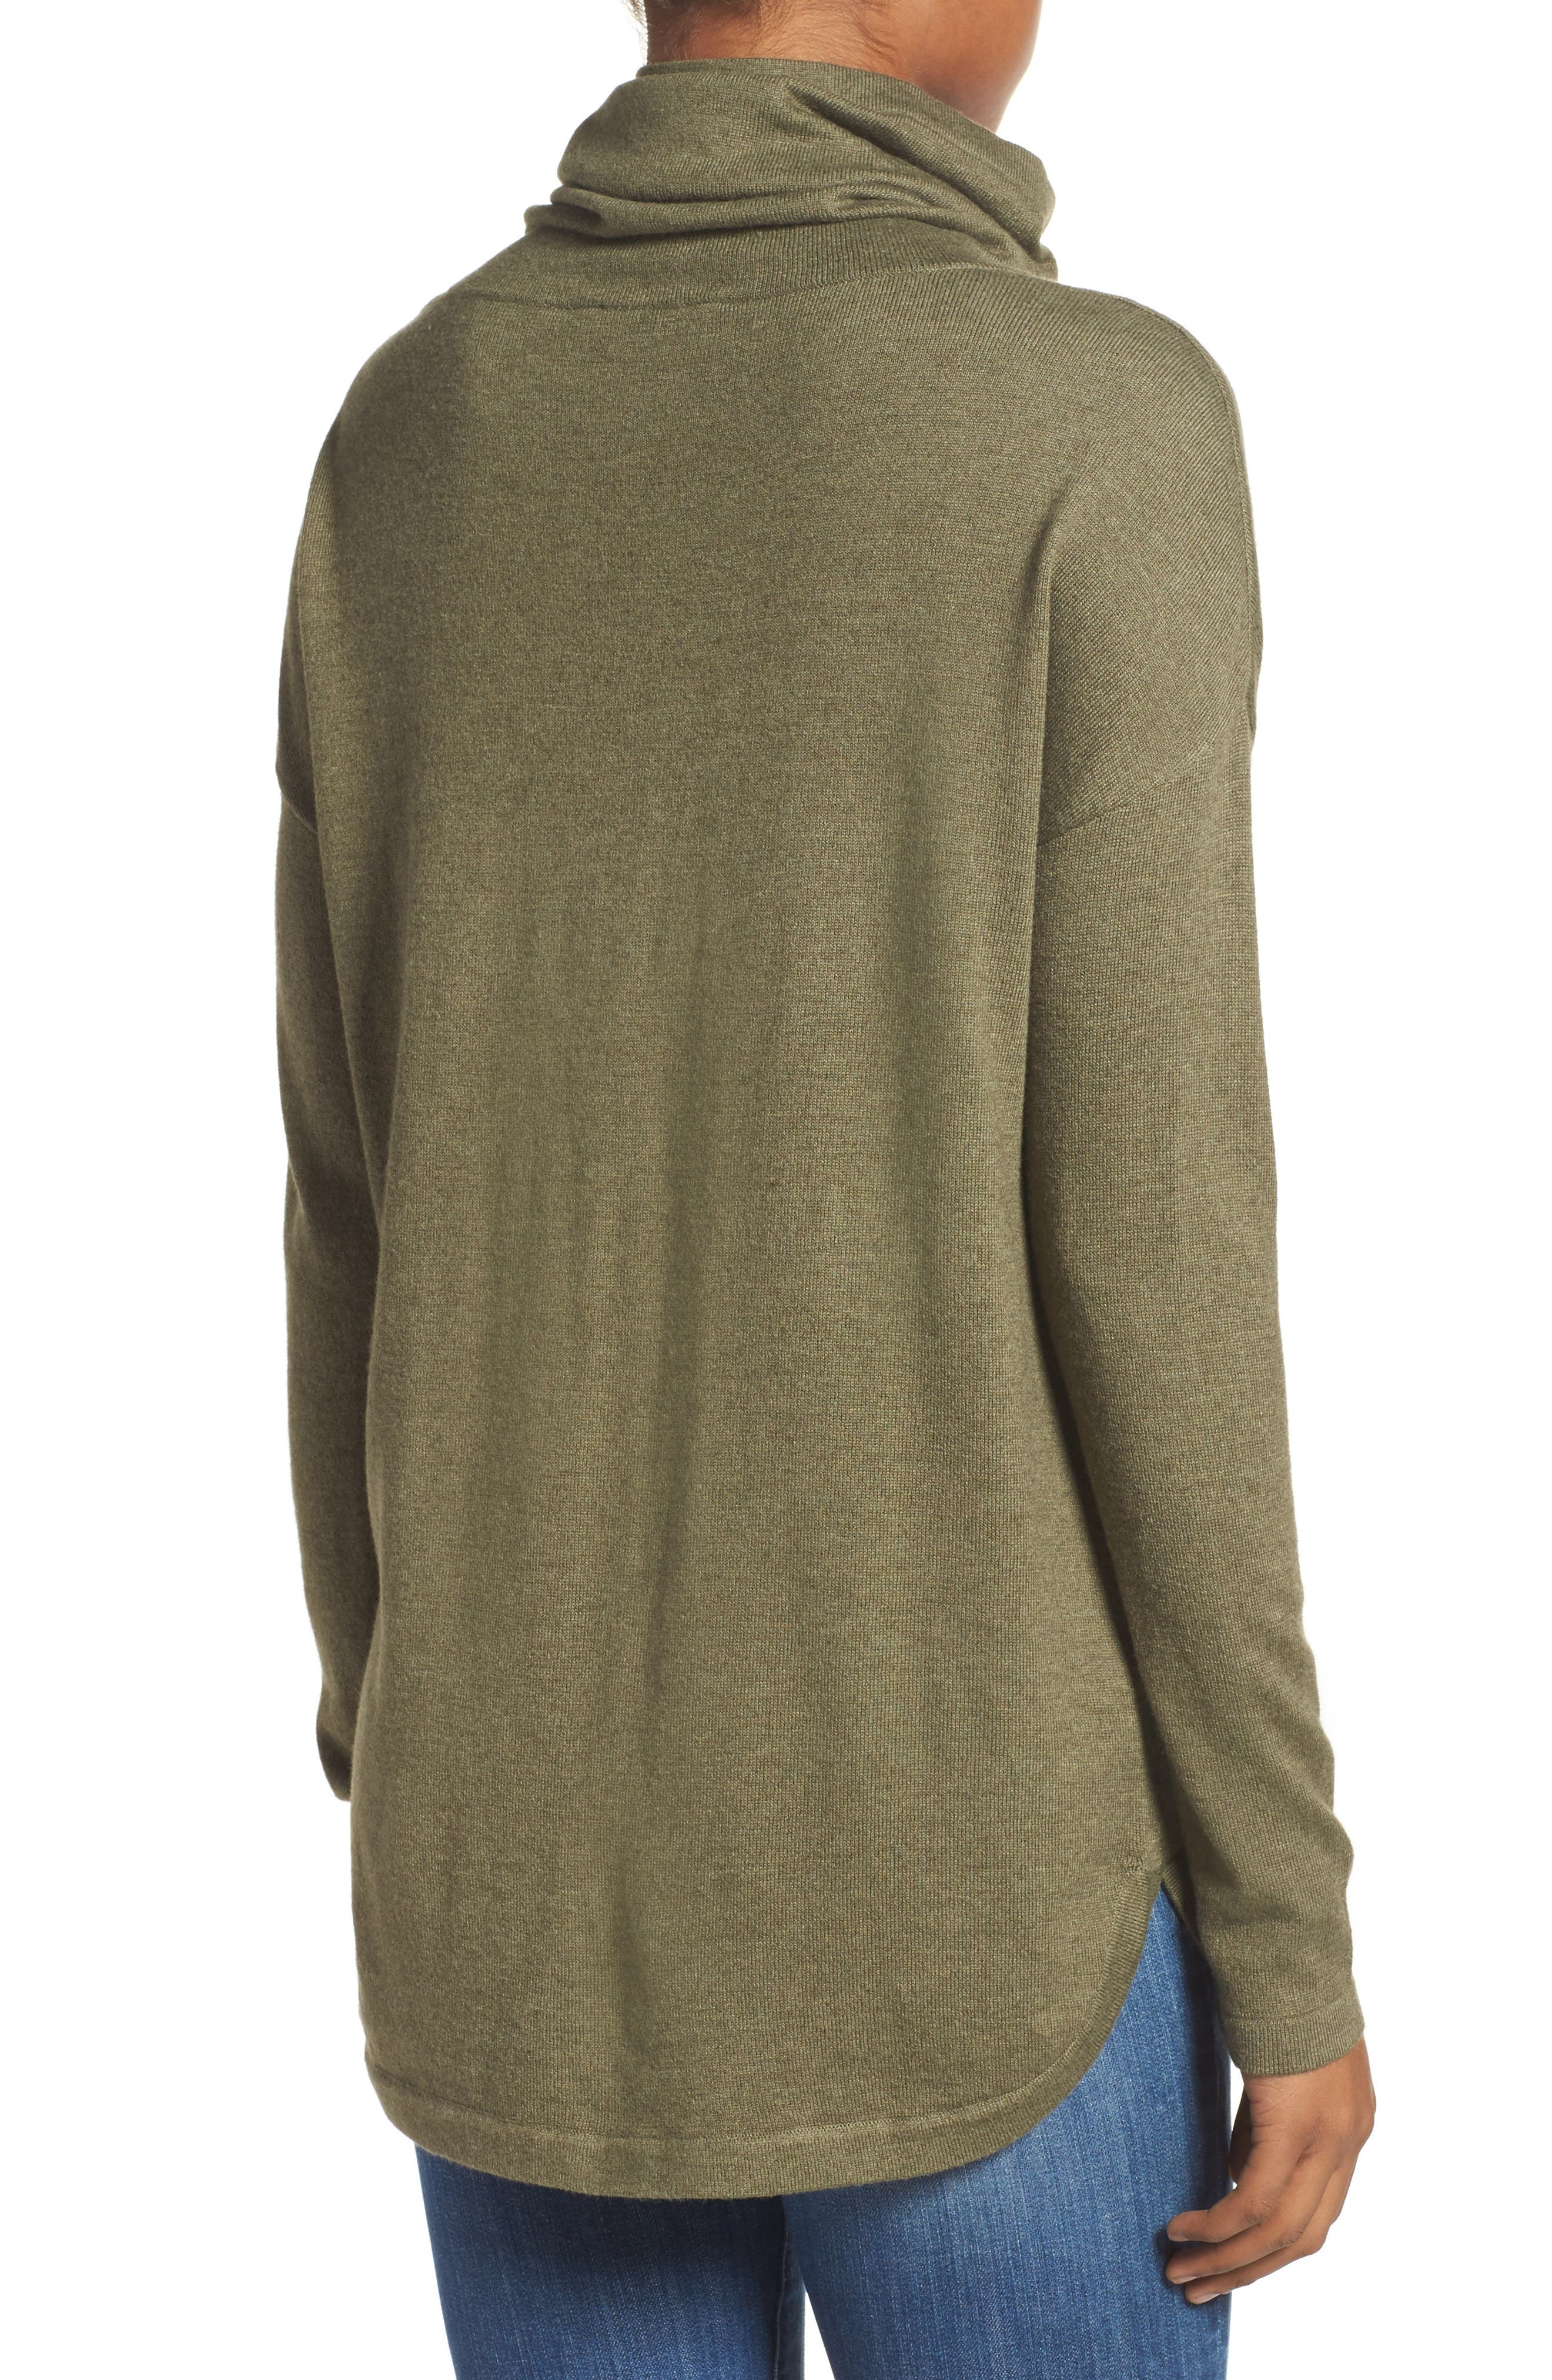 Woodland Tunic Sweater,                             Alternate thumbnail 3, color,                             Burnt Olive Green Heather